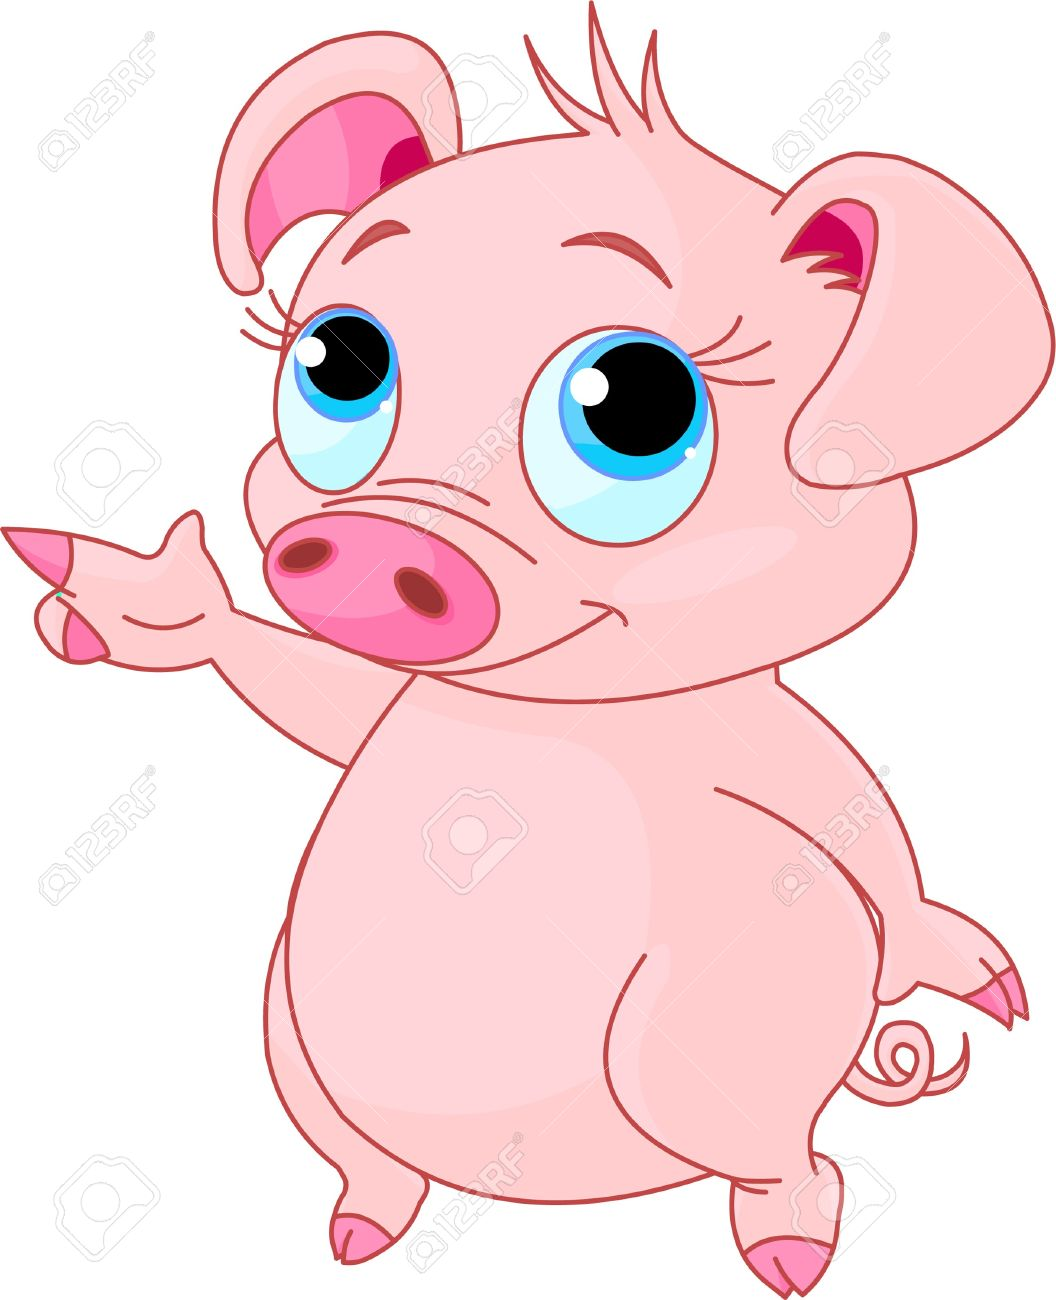 Cute baby piglet pointing (showing, presenting) Stock Vector - 7734585